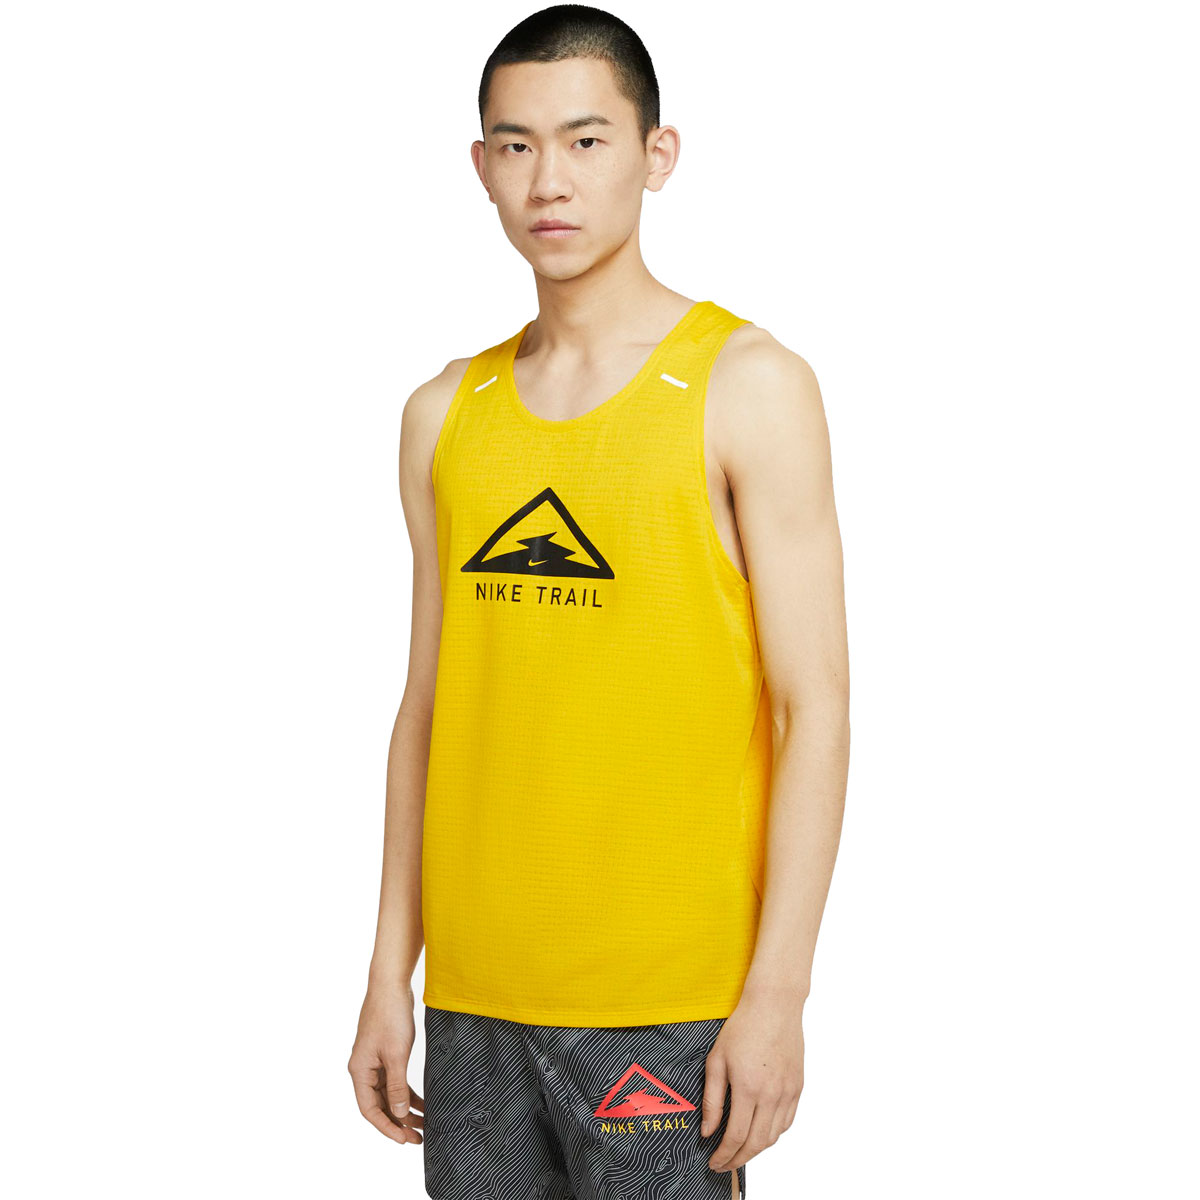 Men's Nike Rise 365 Trail Running Tank - Color: Speed Yellow/Black - Size: S, Speed Yellow/Black, large, image 1